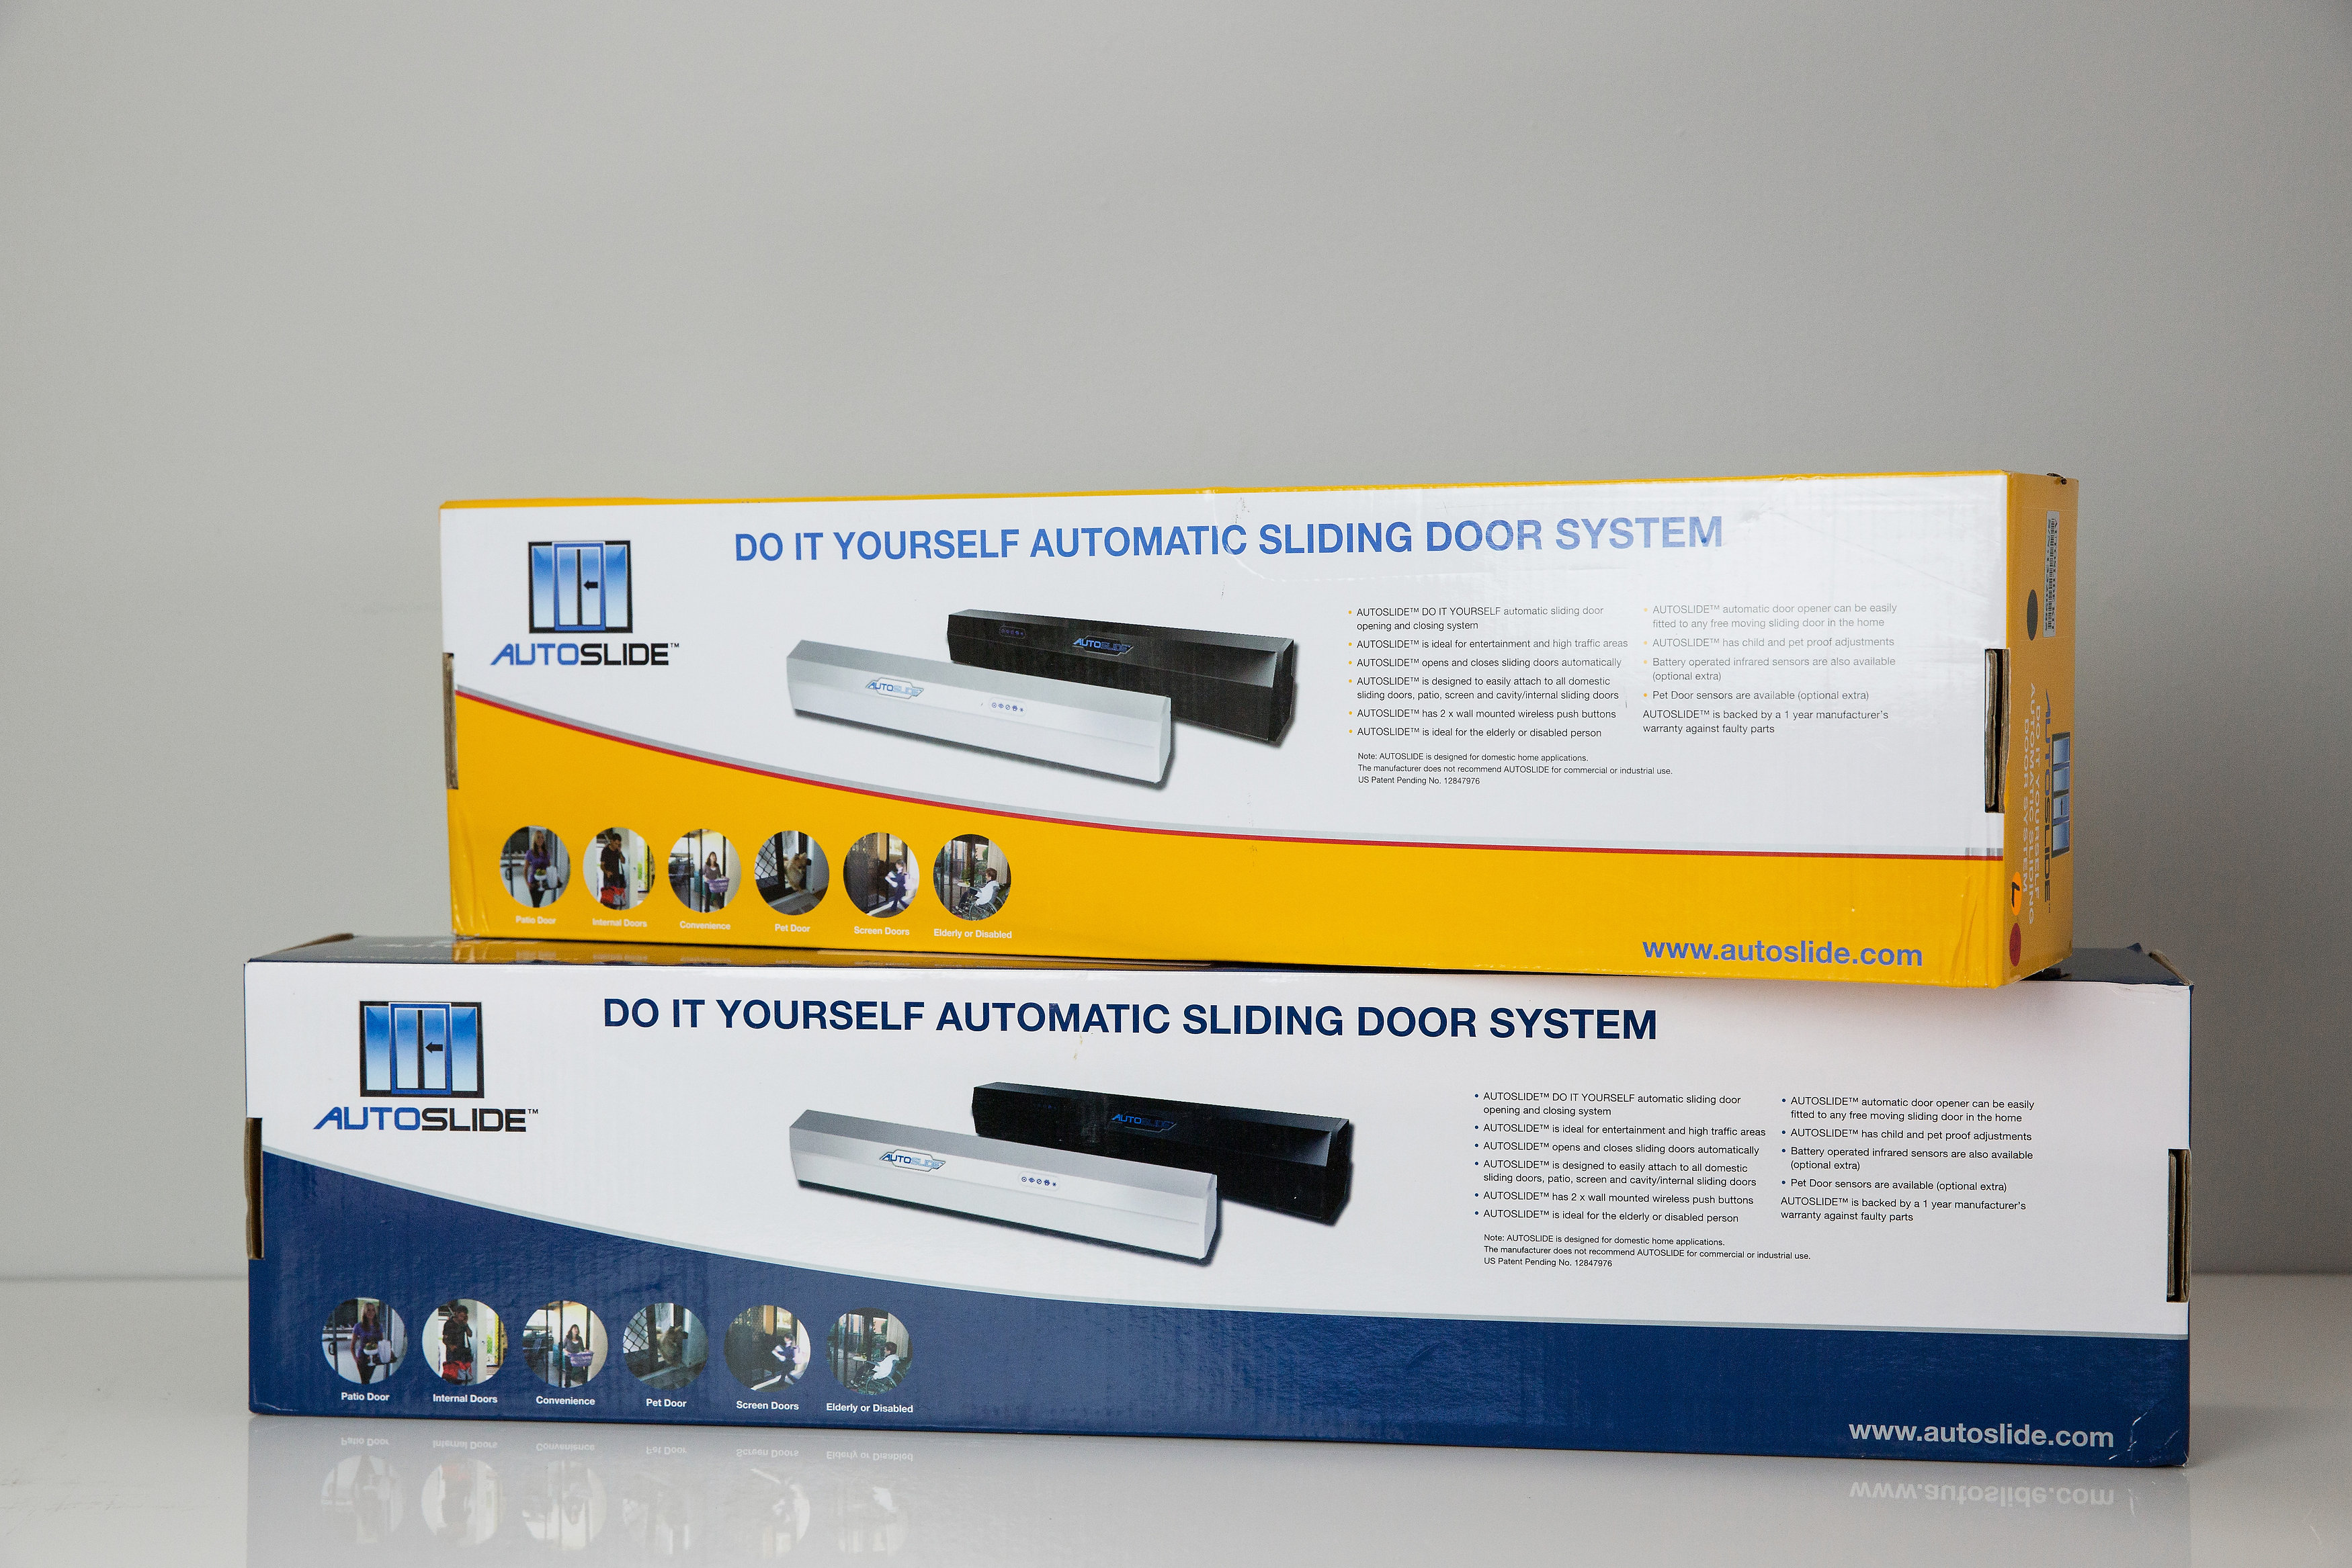 Autoslides Residential Automatic Door System Launches Into The